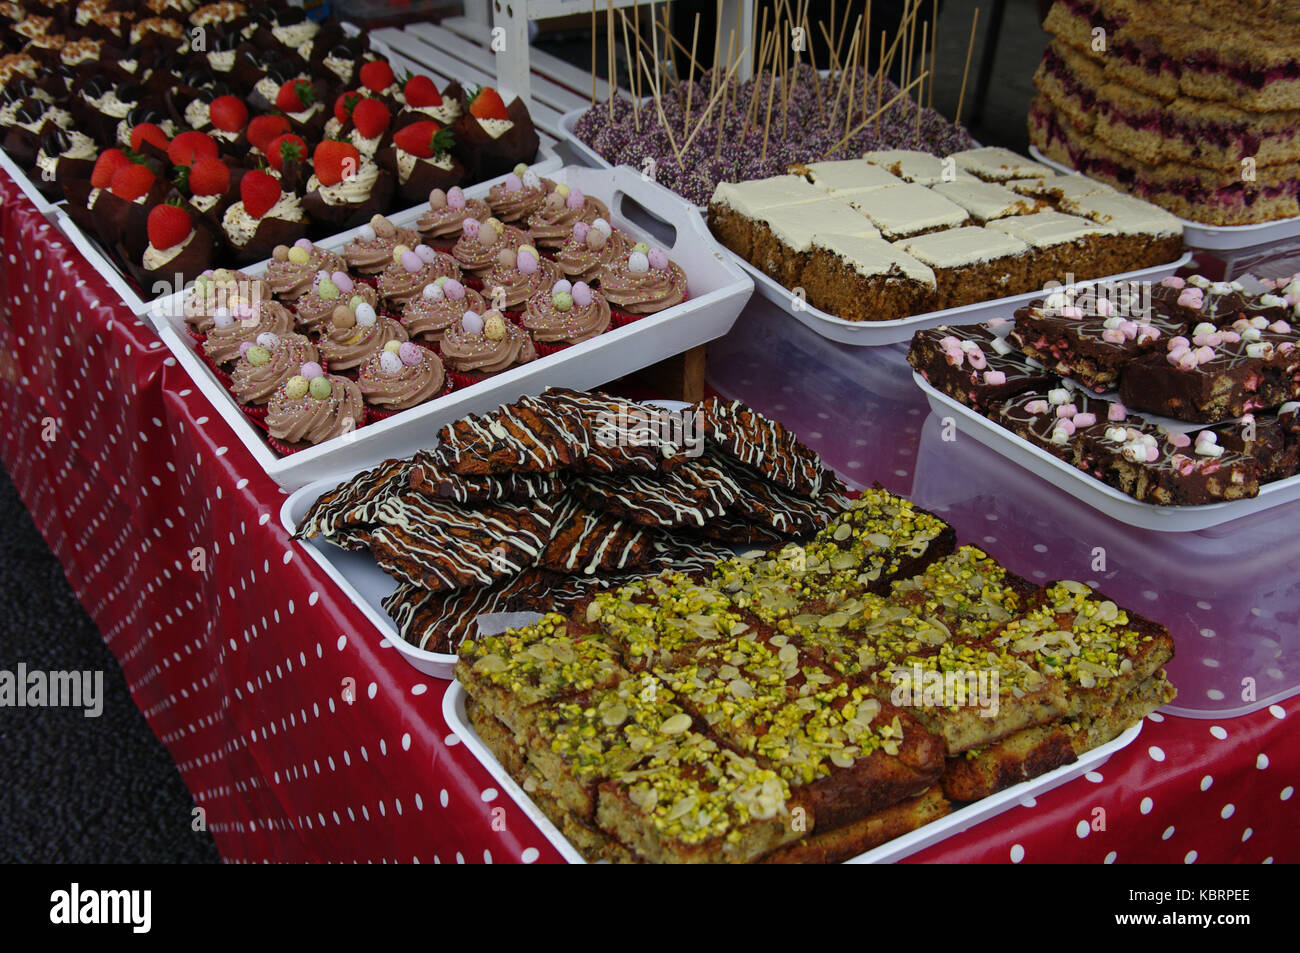 Perishables stock photos perishables stock images alamy for Artisan indian cuisine